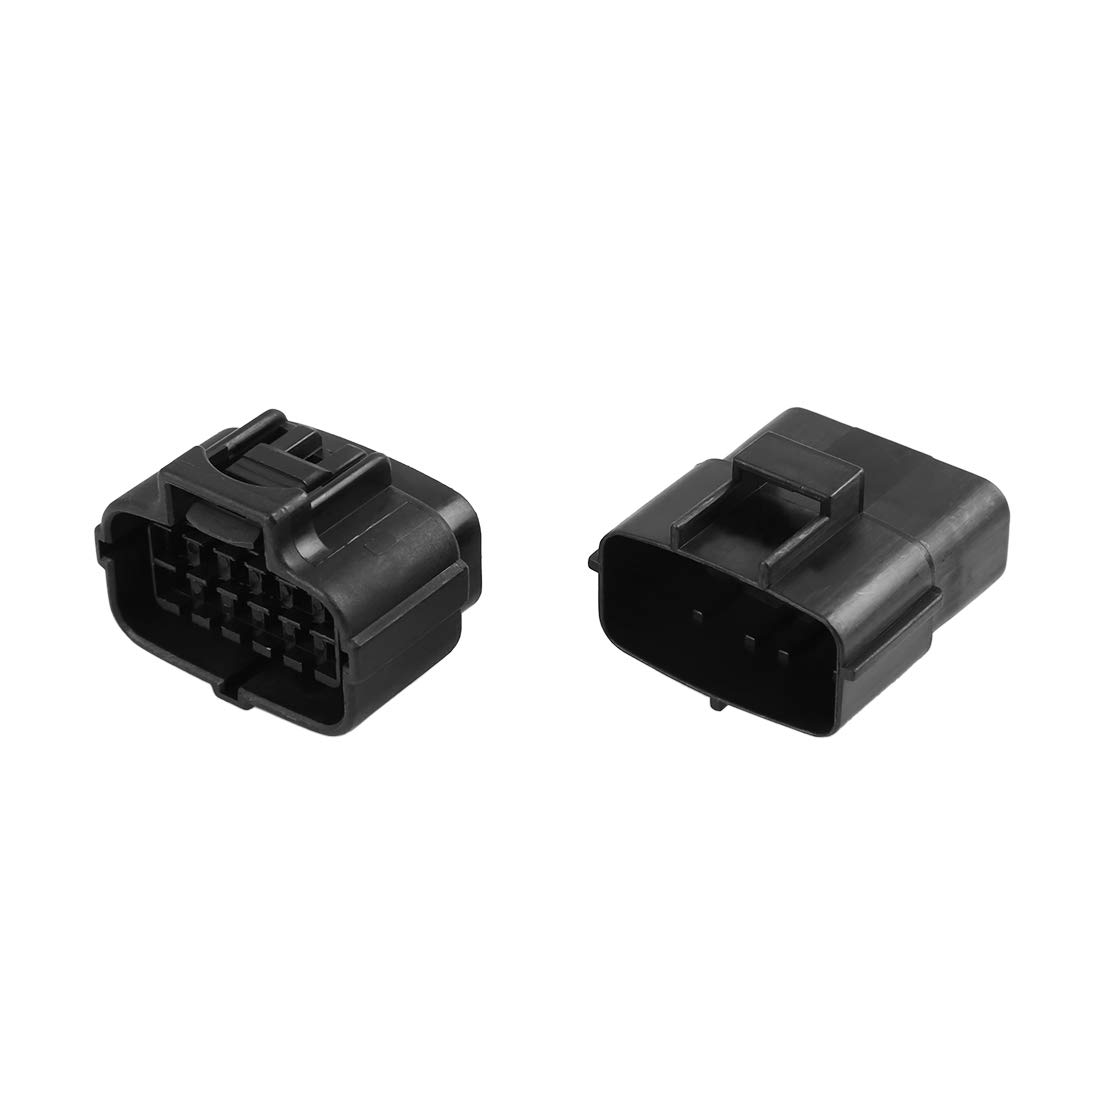 X AUTOHAUX 12 Pins Way Car Waterproof Electrical Connector Terminal Set